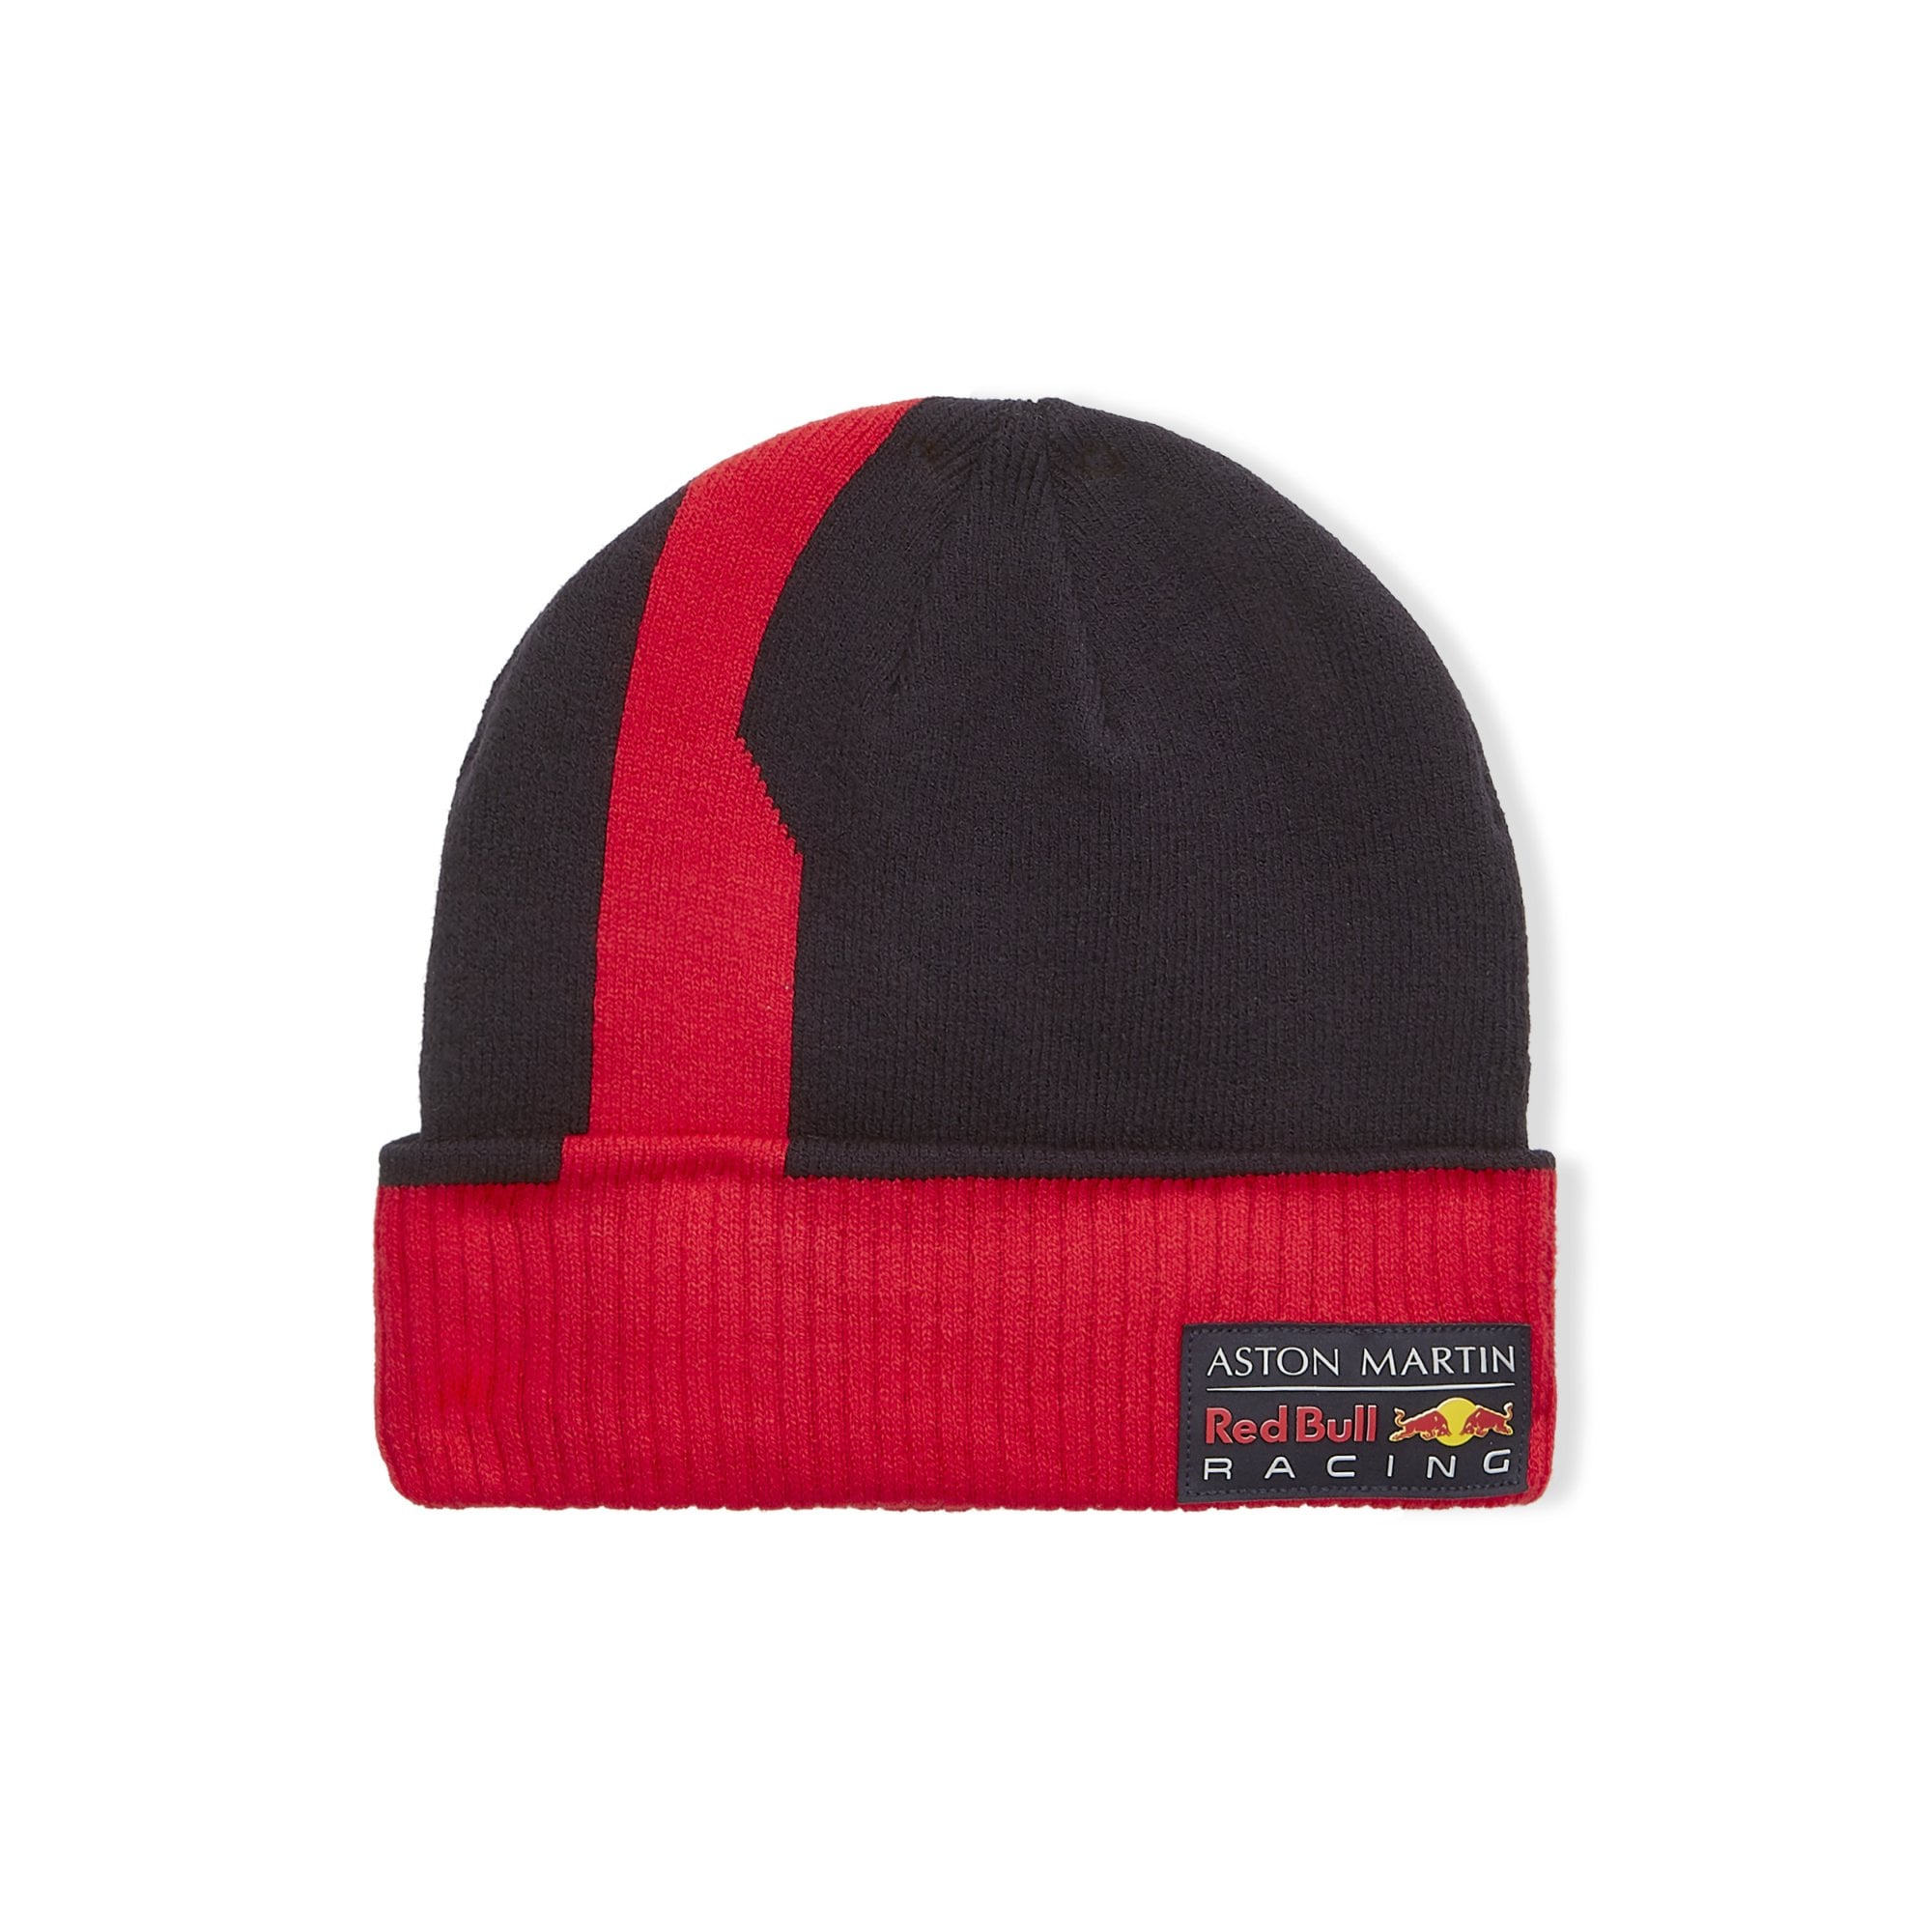 Aston Martin Red Bull Racing Beanie Hat 2020 Clothing From 195 Mph Uk